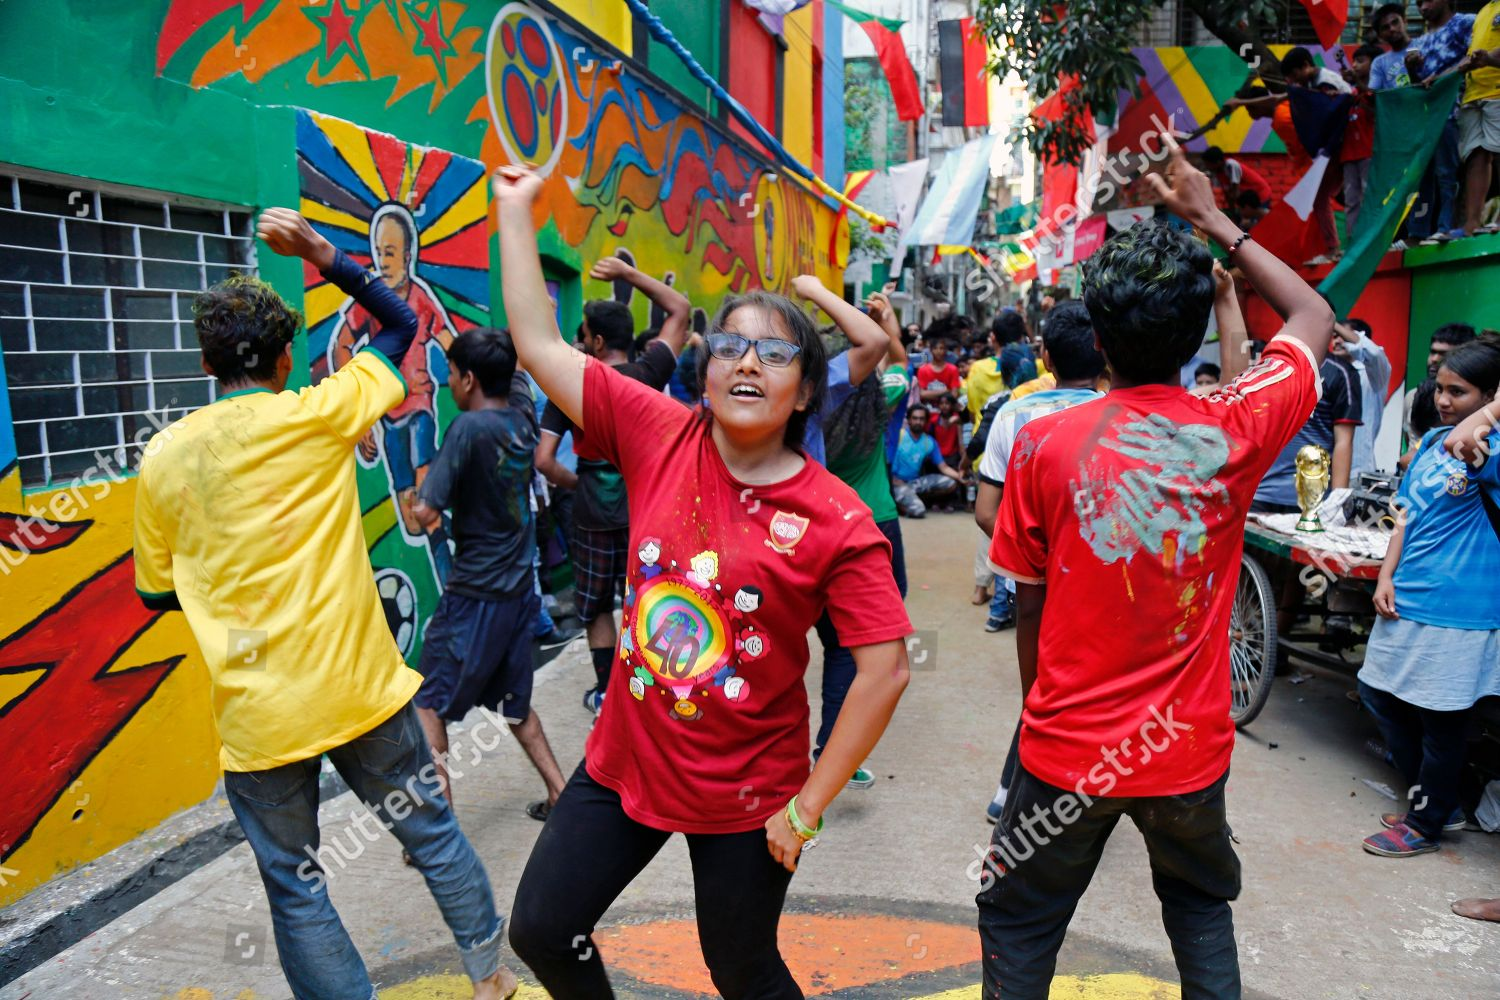 Bangladeshi Soccer Fans Attend Flash Mob Celebrate Editorial Stock